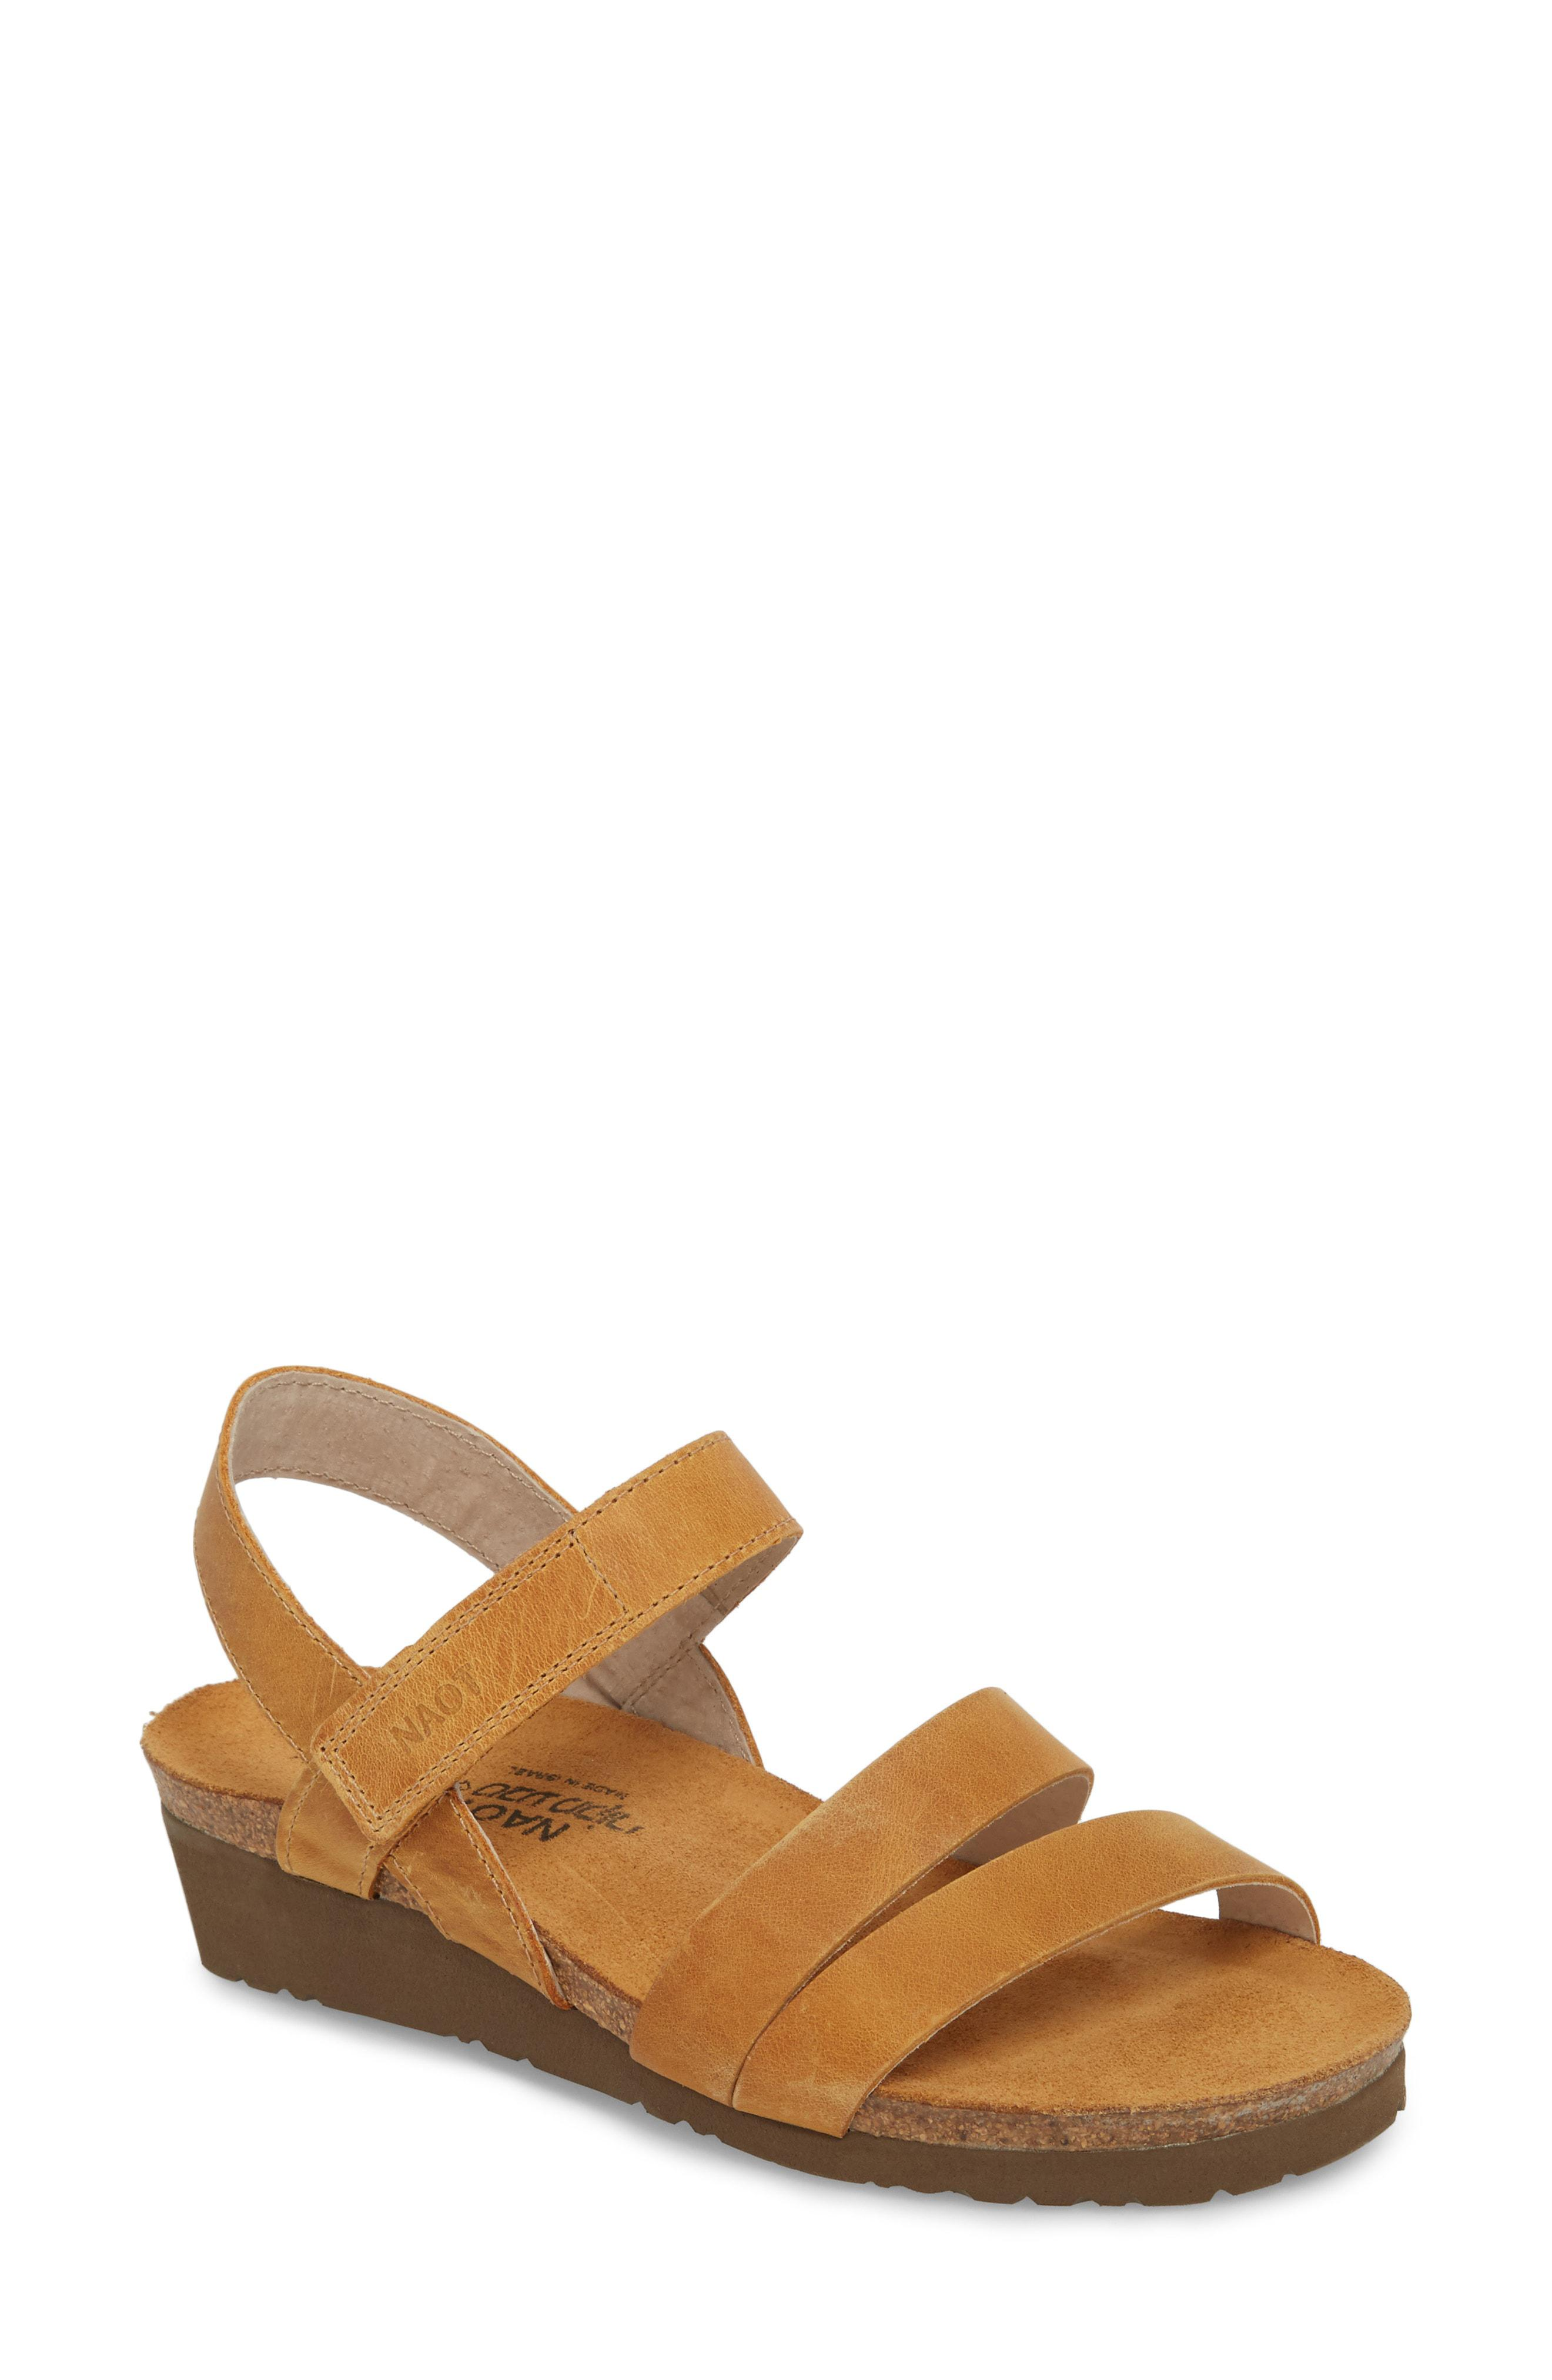 eb7798a5bb50 Lyst - Naot Kayla Wedge Sandal in Natural